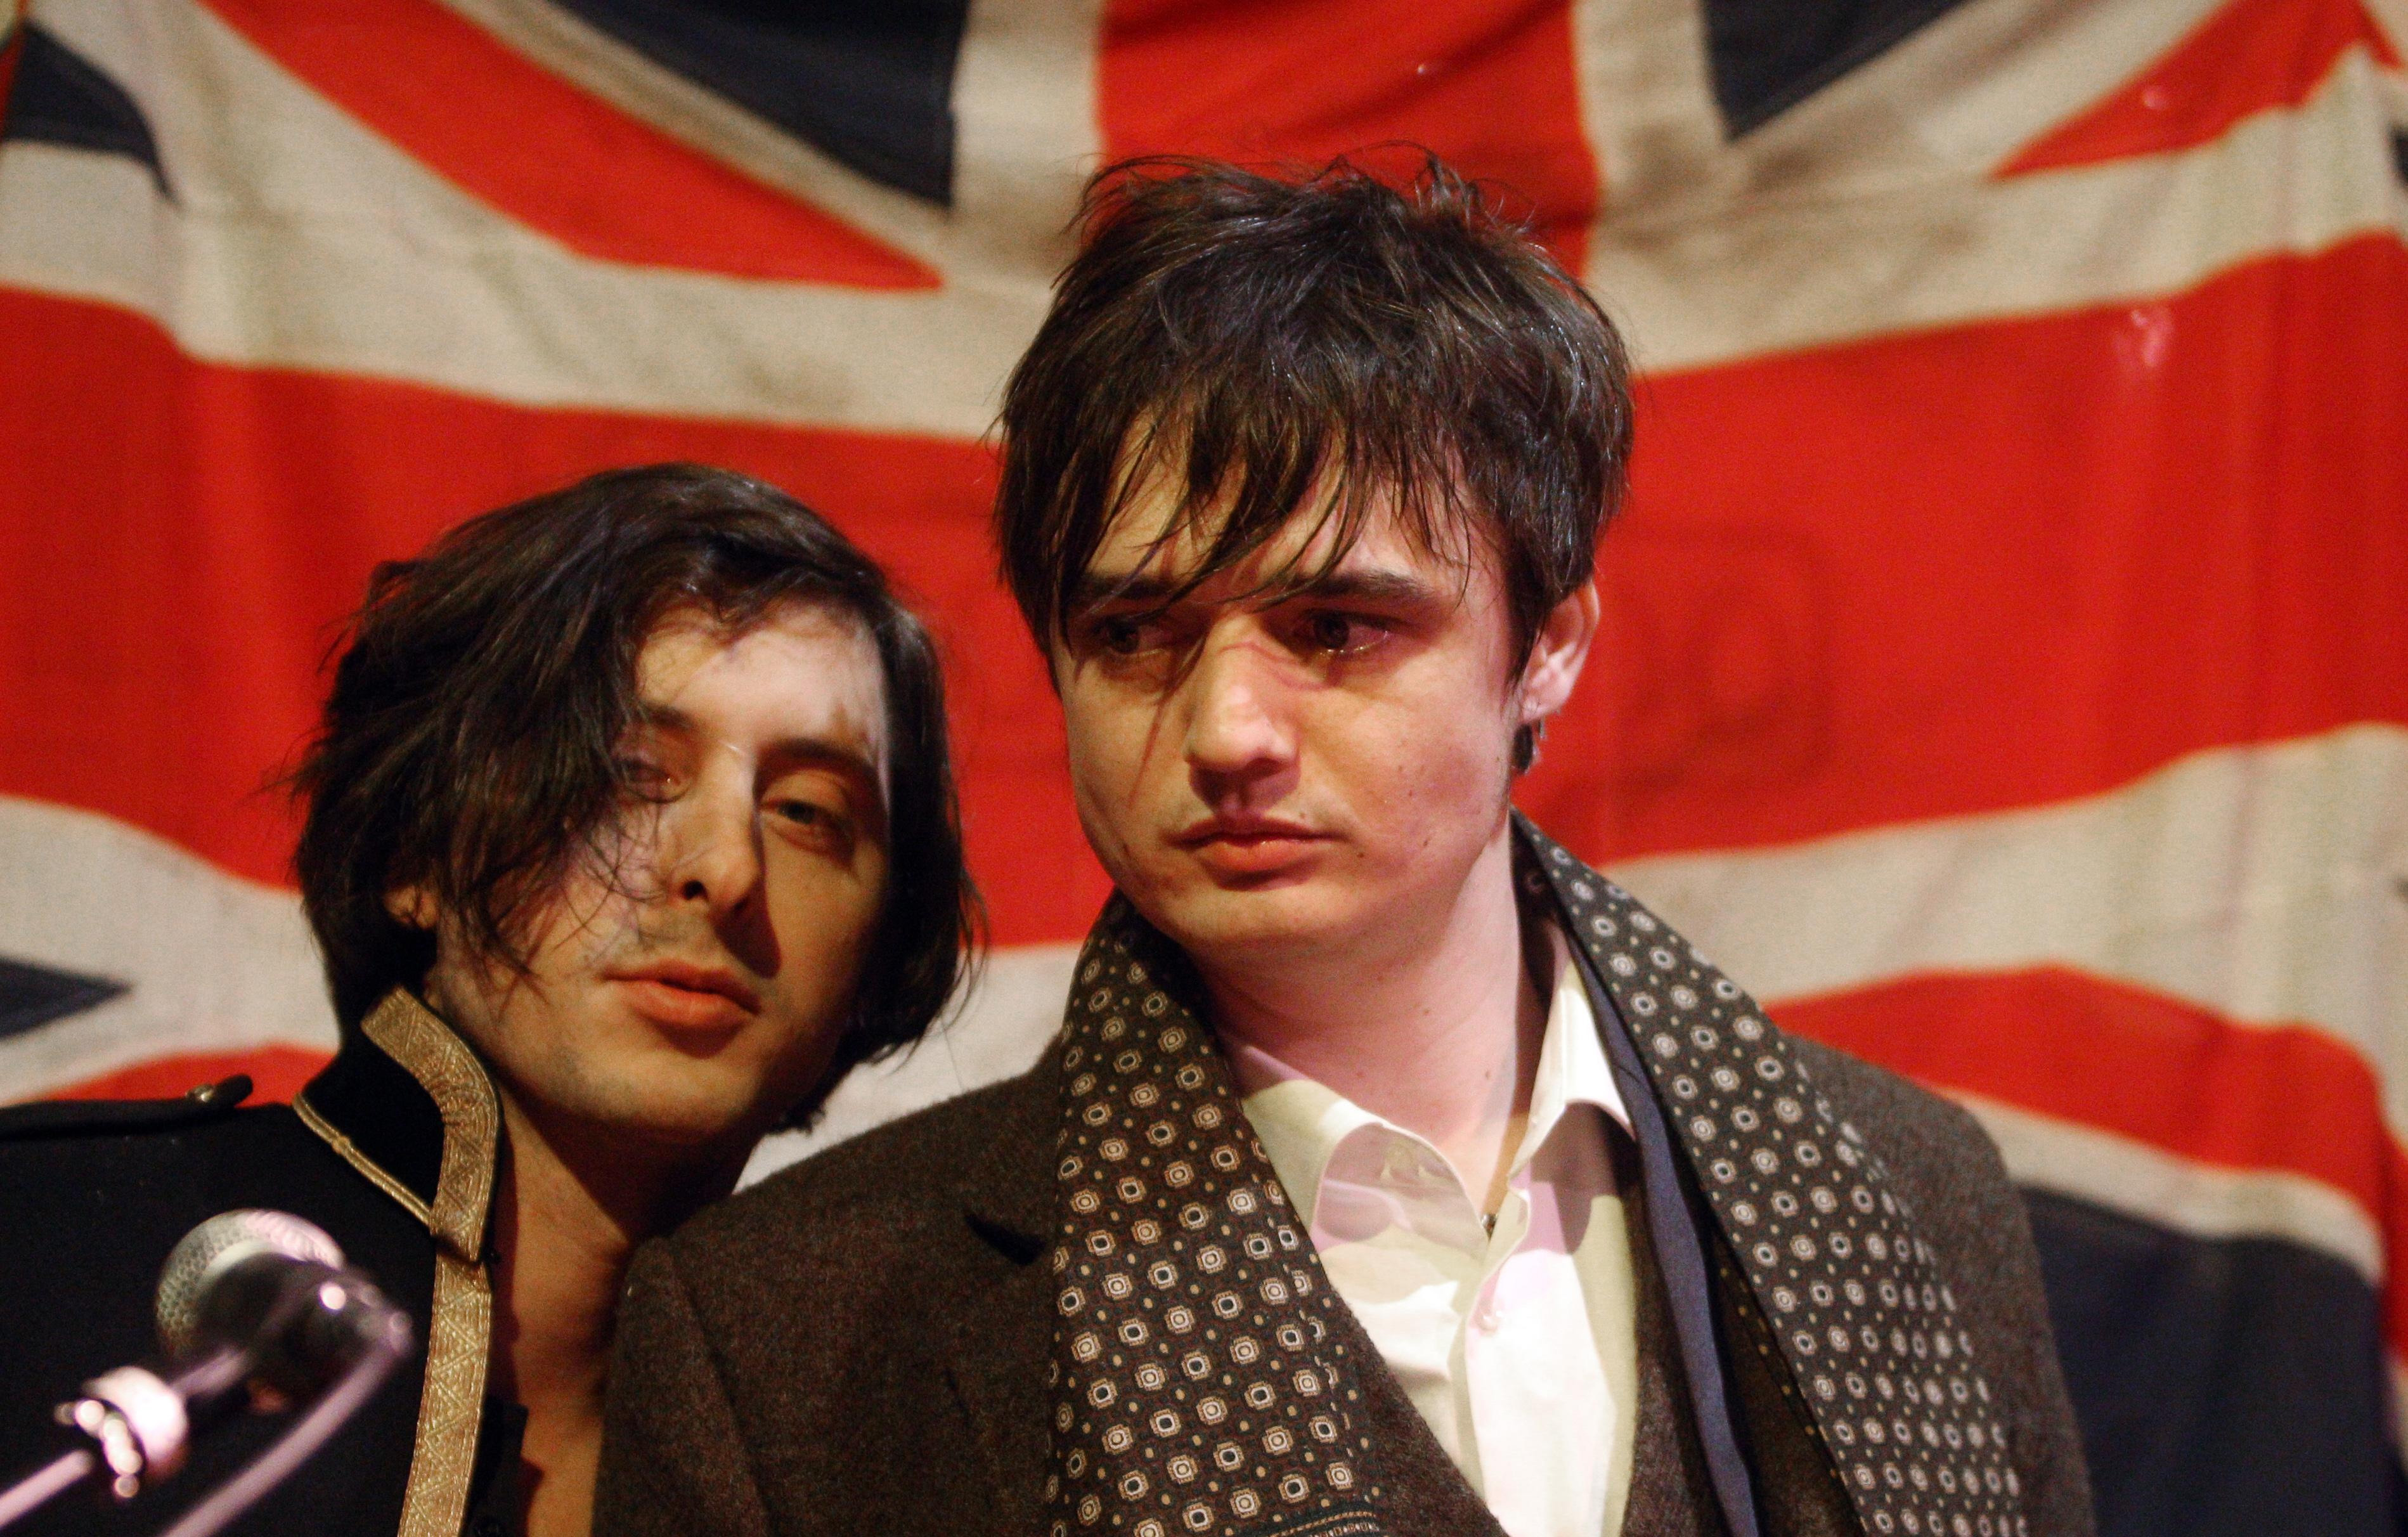 Carl Barat (left) and Pete Doherty